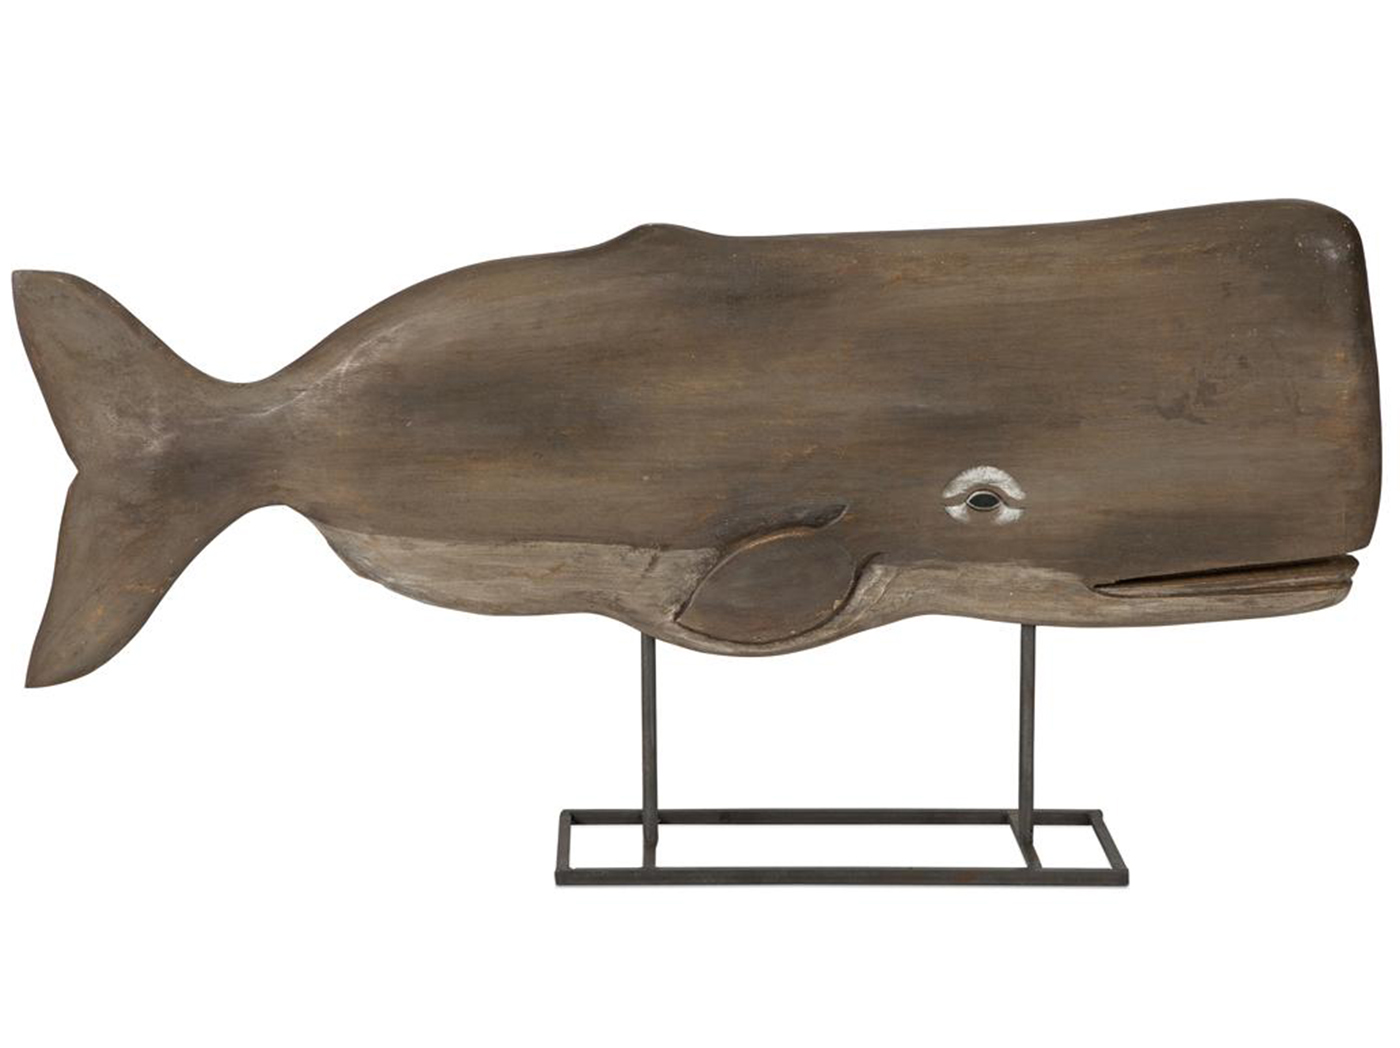 "Carved Wood Whale Statue on Stand 30""W x 15""H"